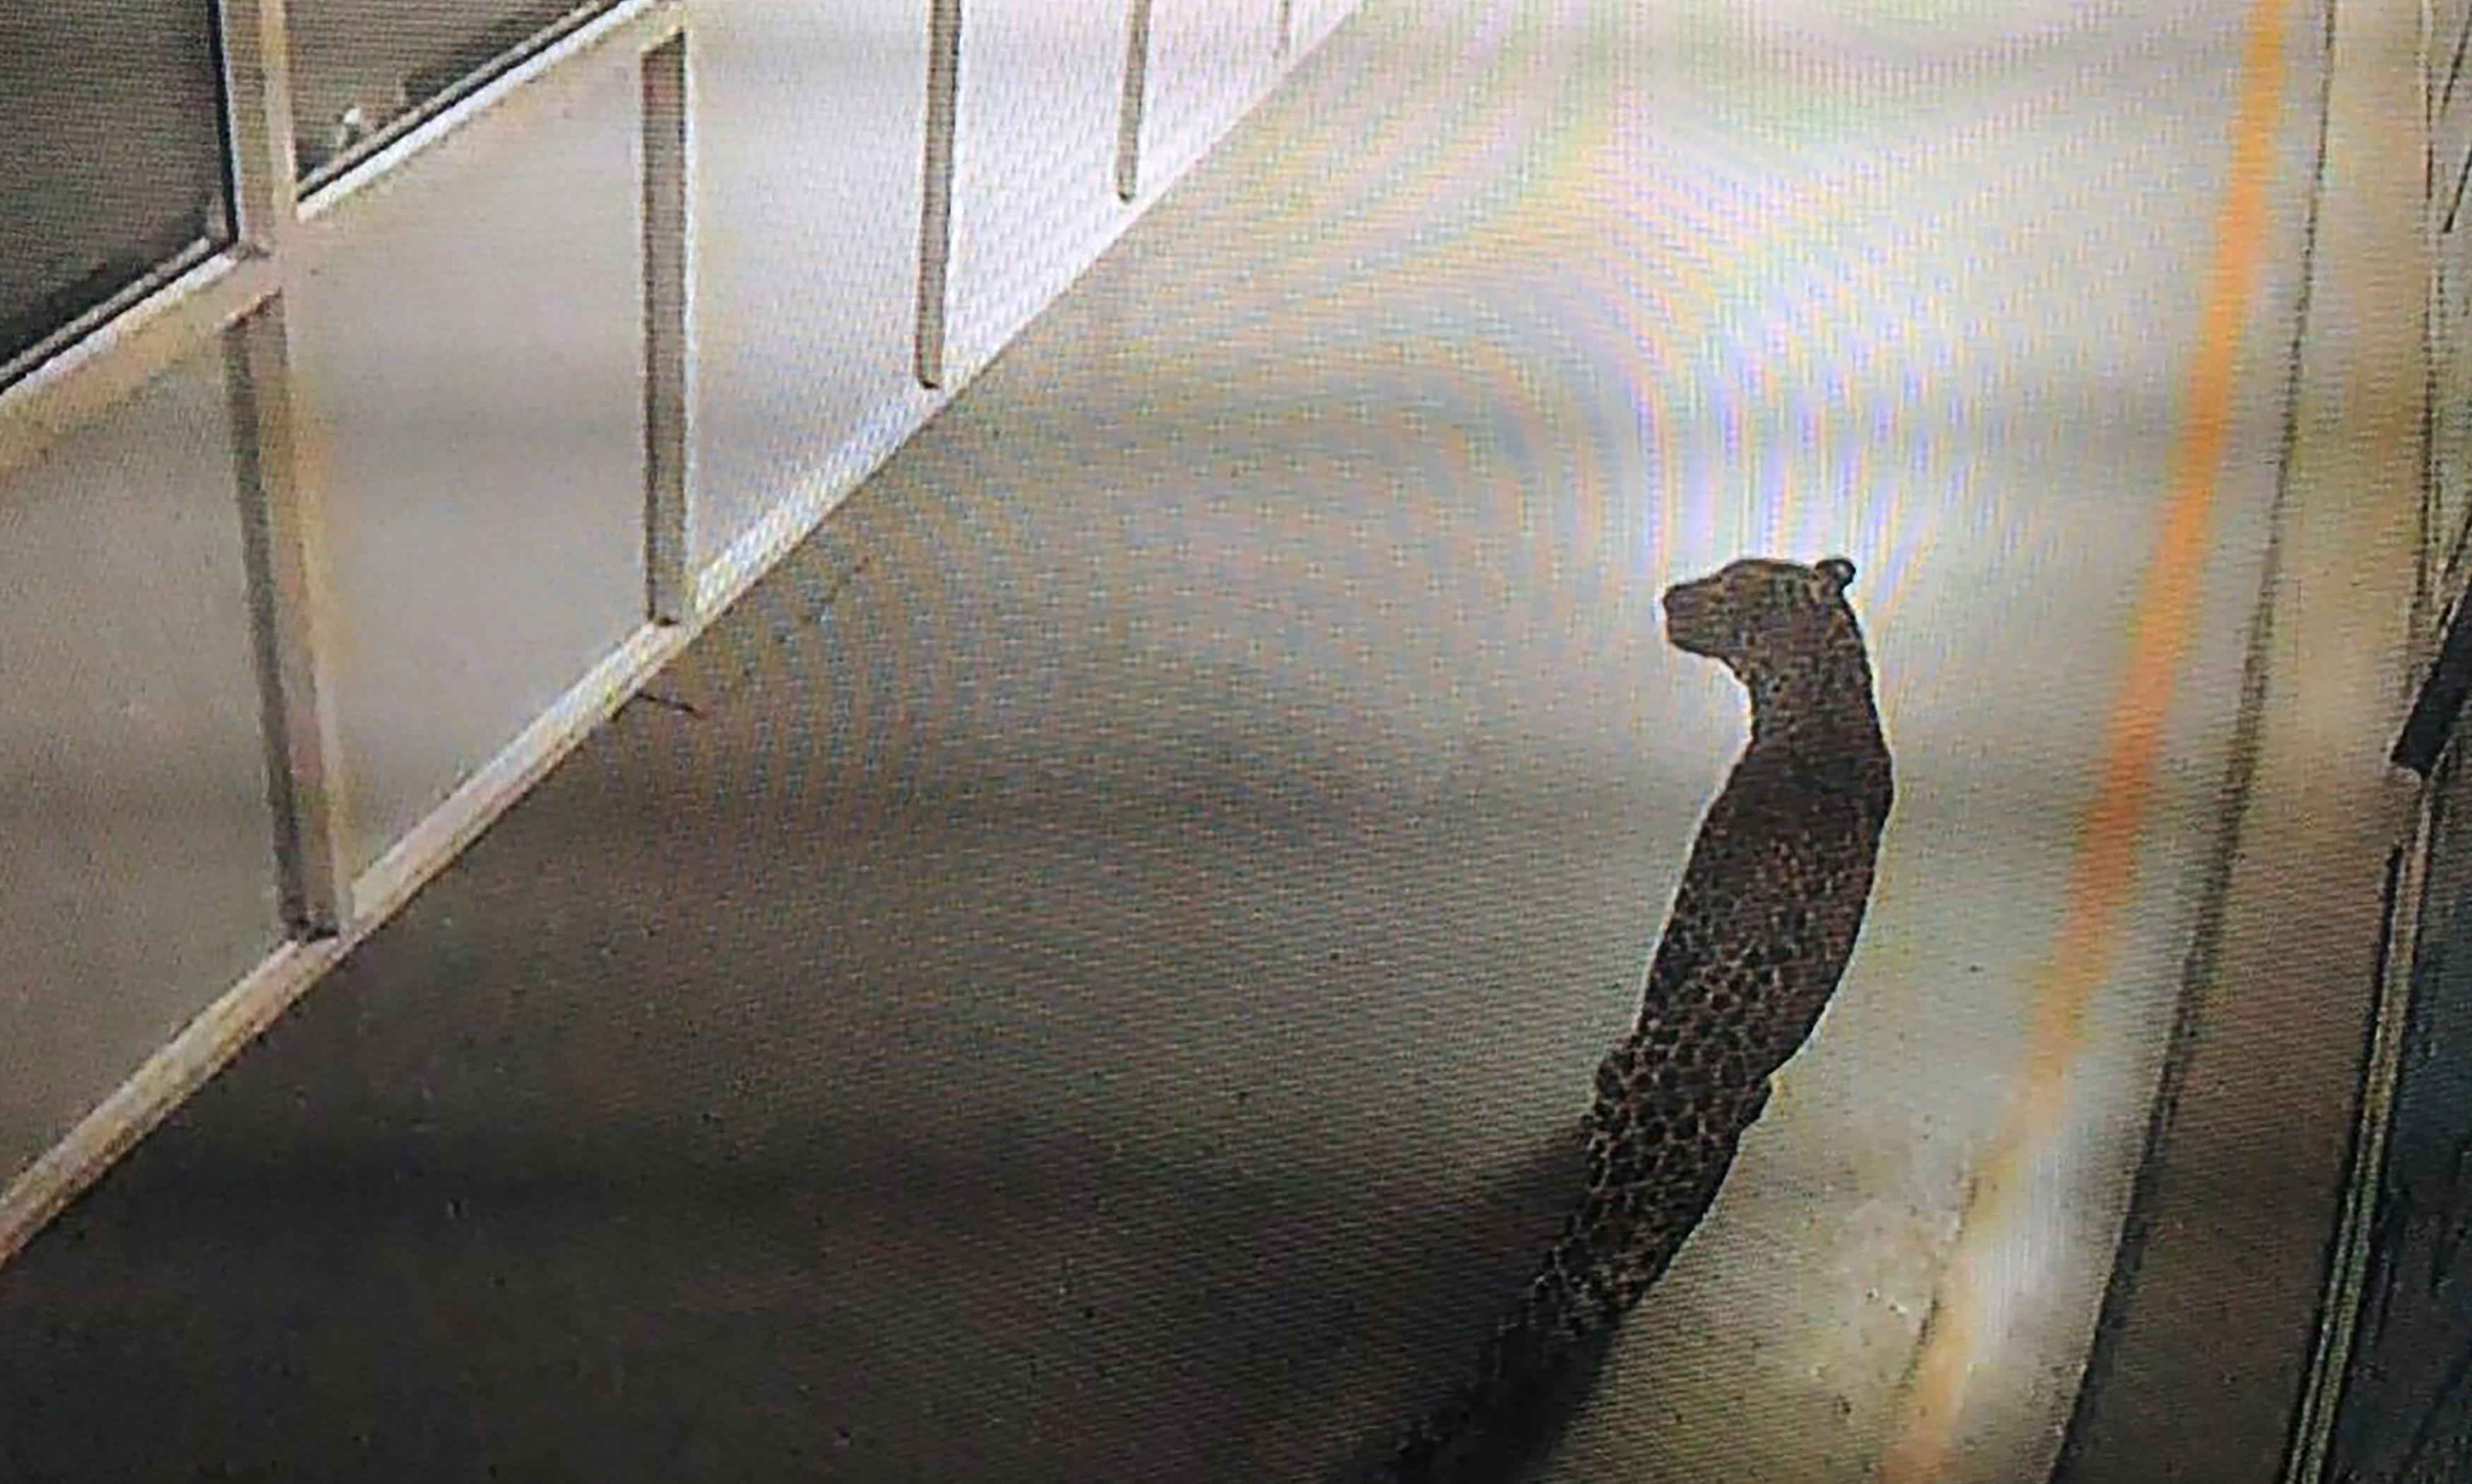 Leopard captured after 36 hours on the loose at Indian car plant